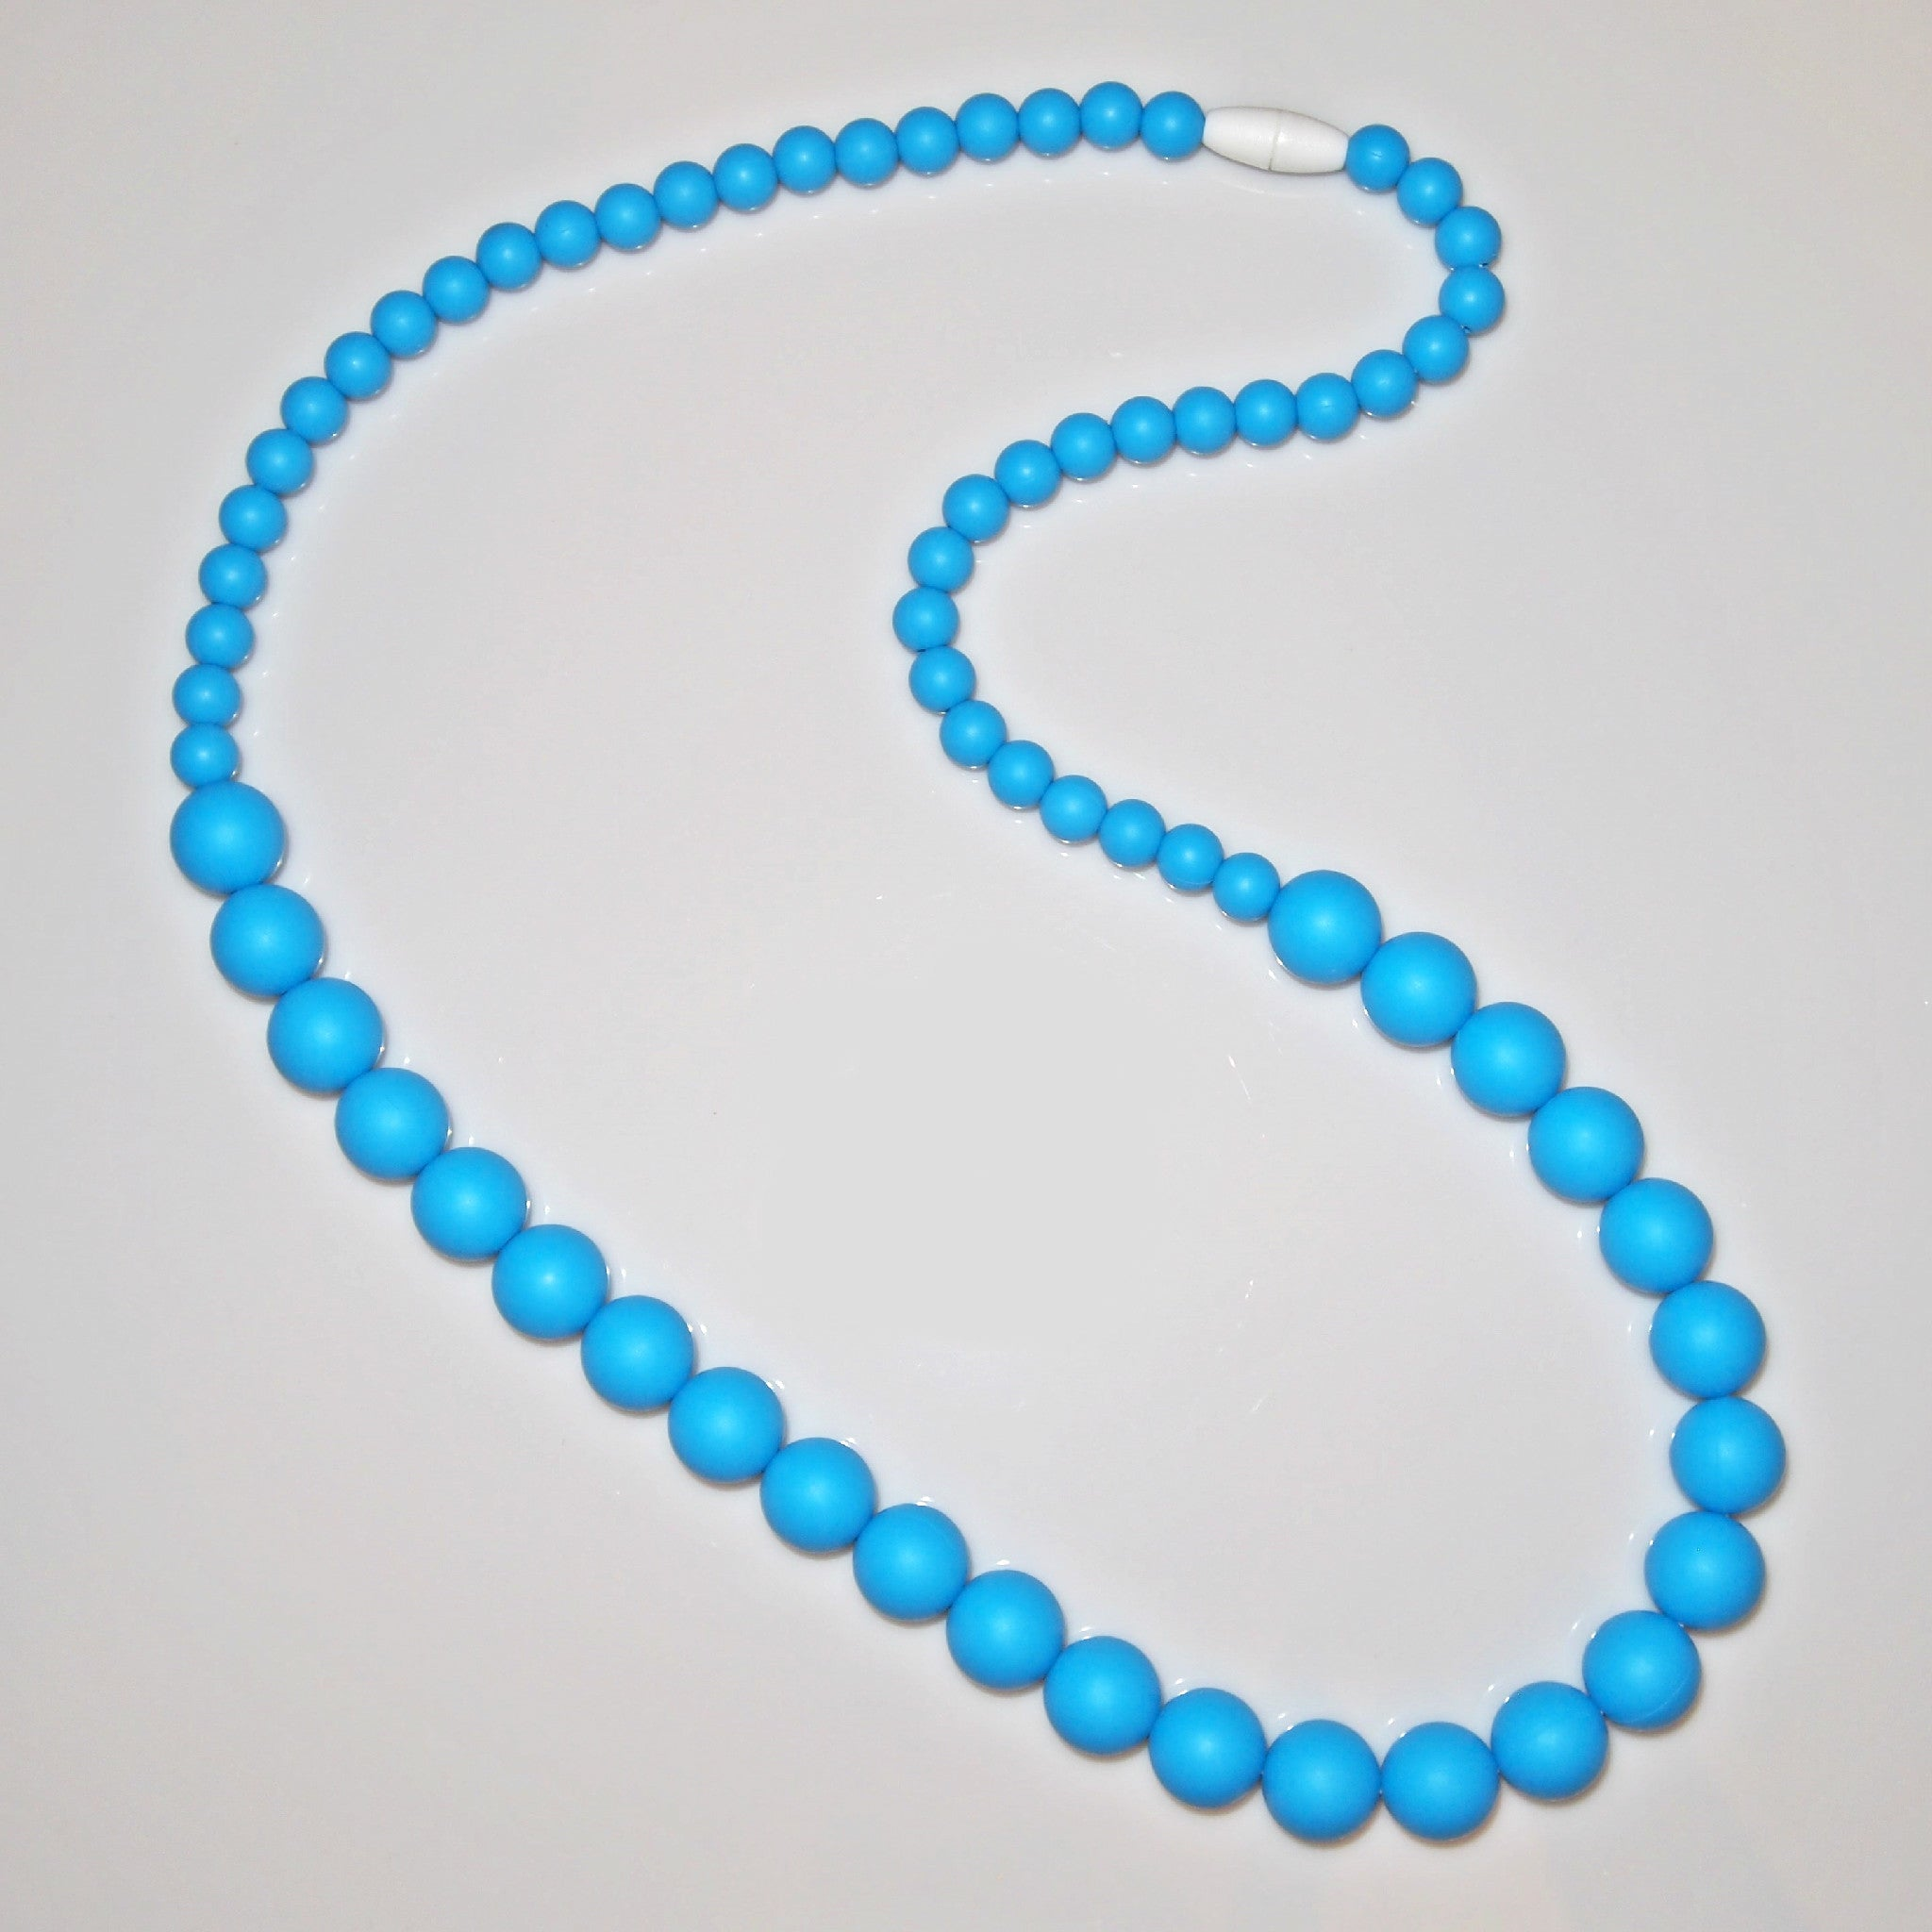 Silicone Round Bead Teething Necklace - Sky Blue - Find Something Special